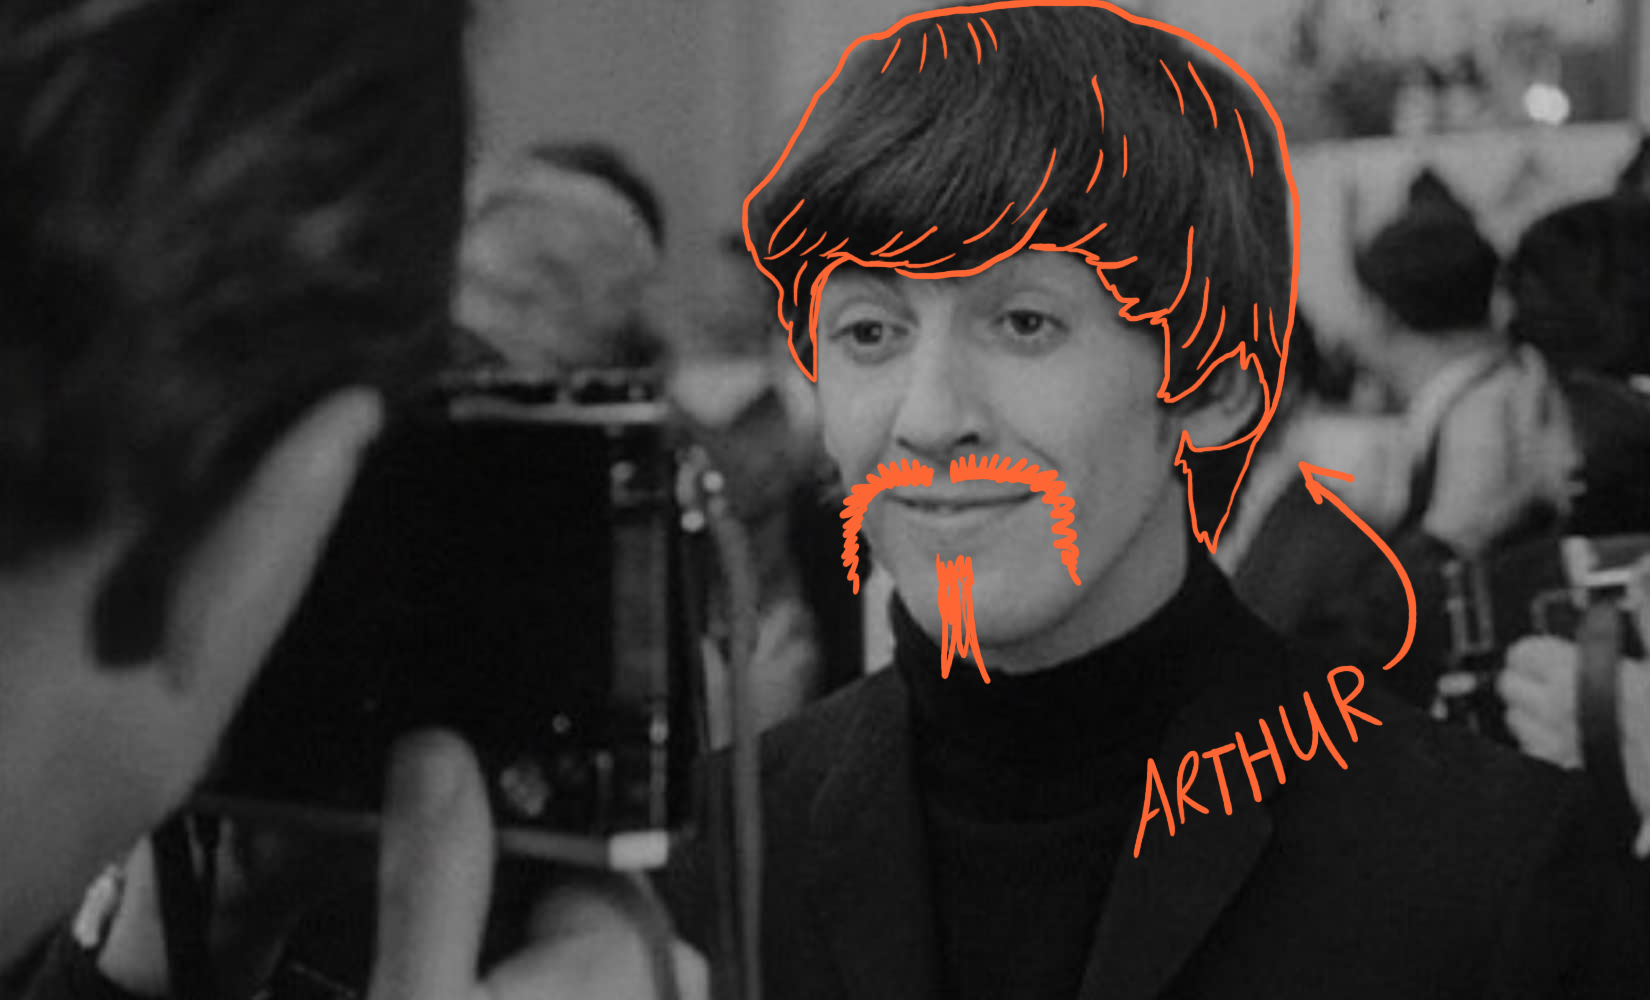 Who the F is Arthur?